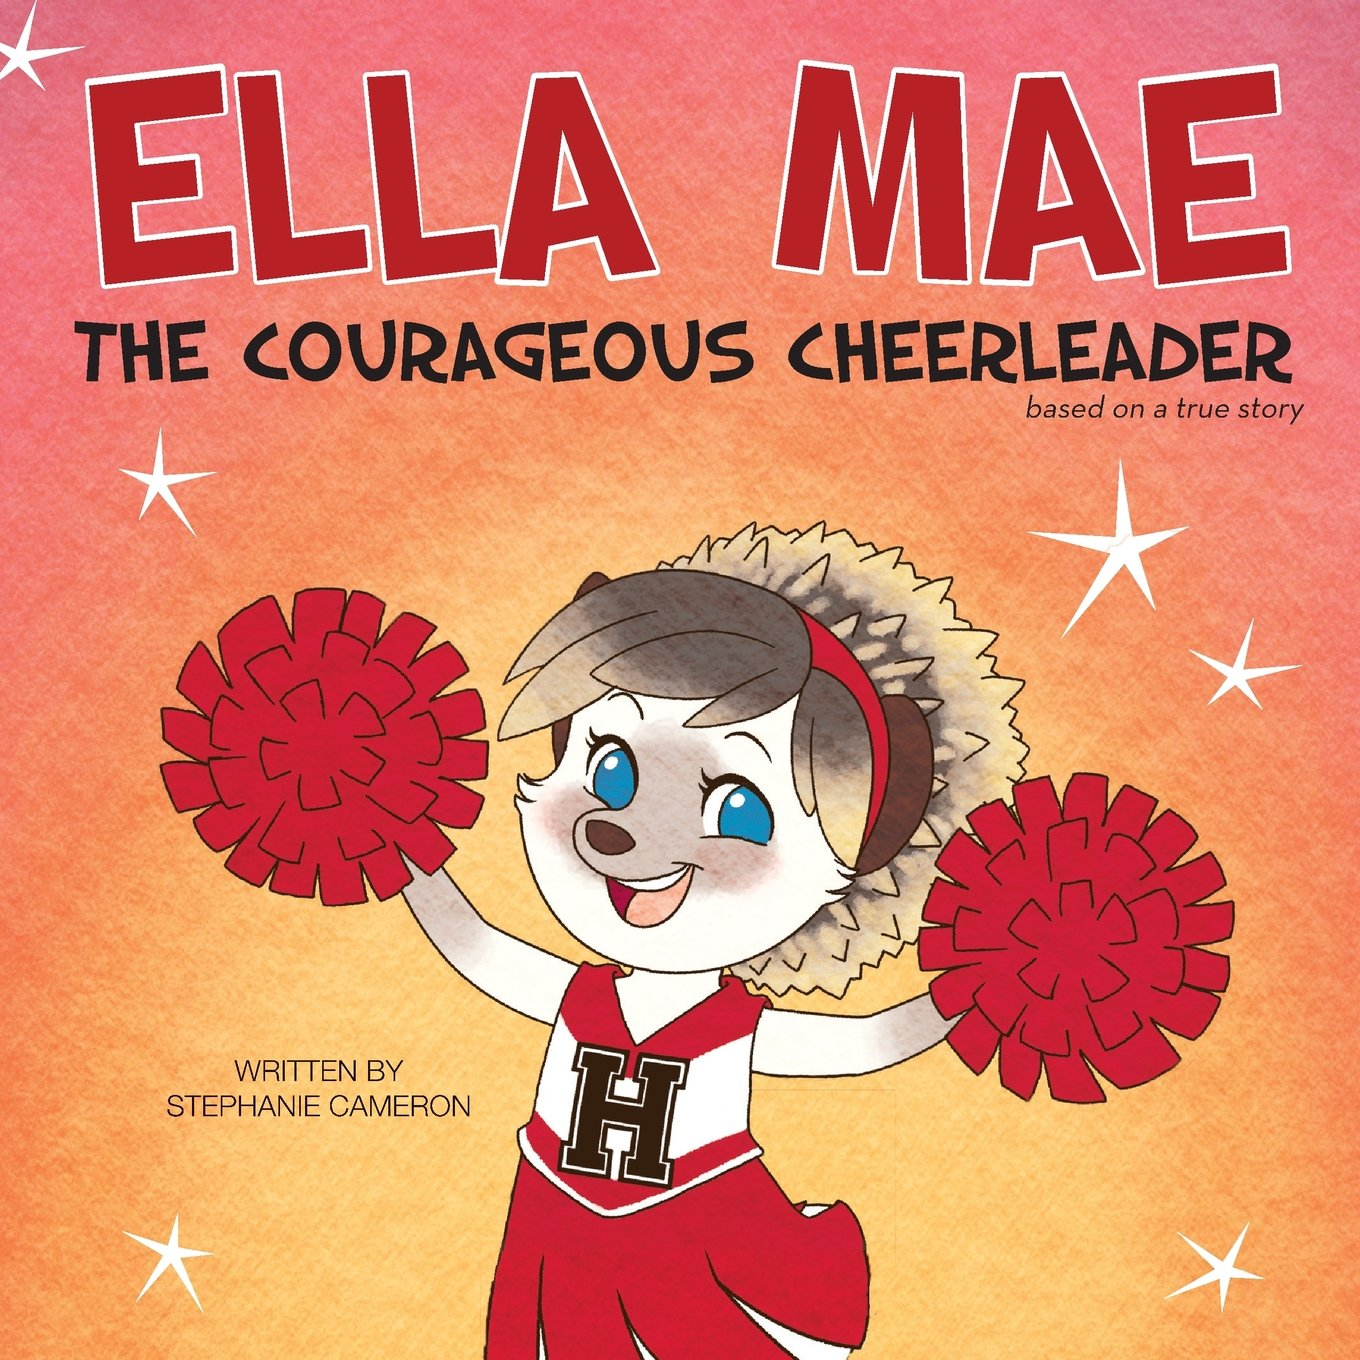 872b38d97 Ella Mae  The Courageous Cheerleader  Stephanie Cameron ...